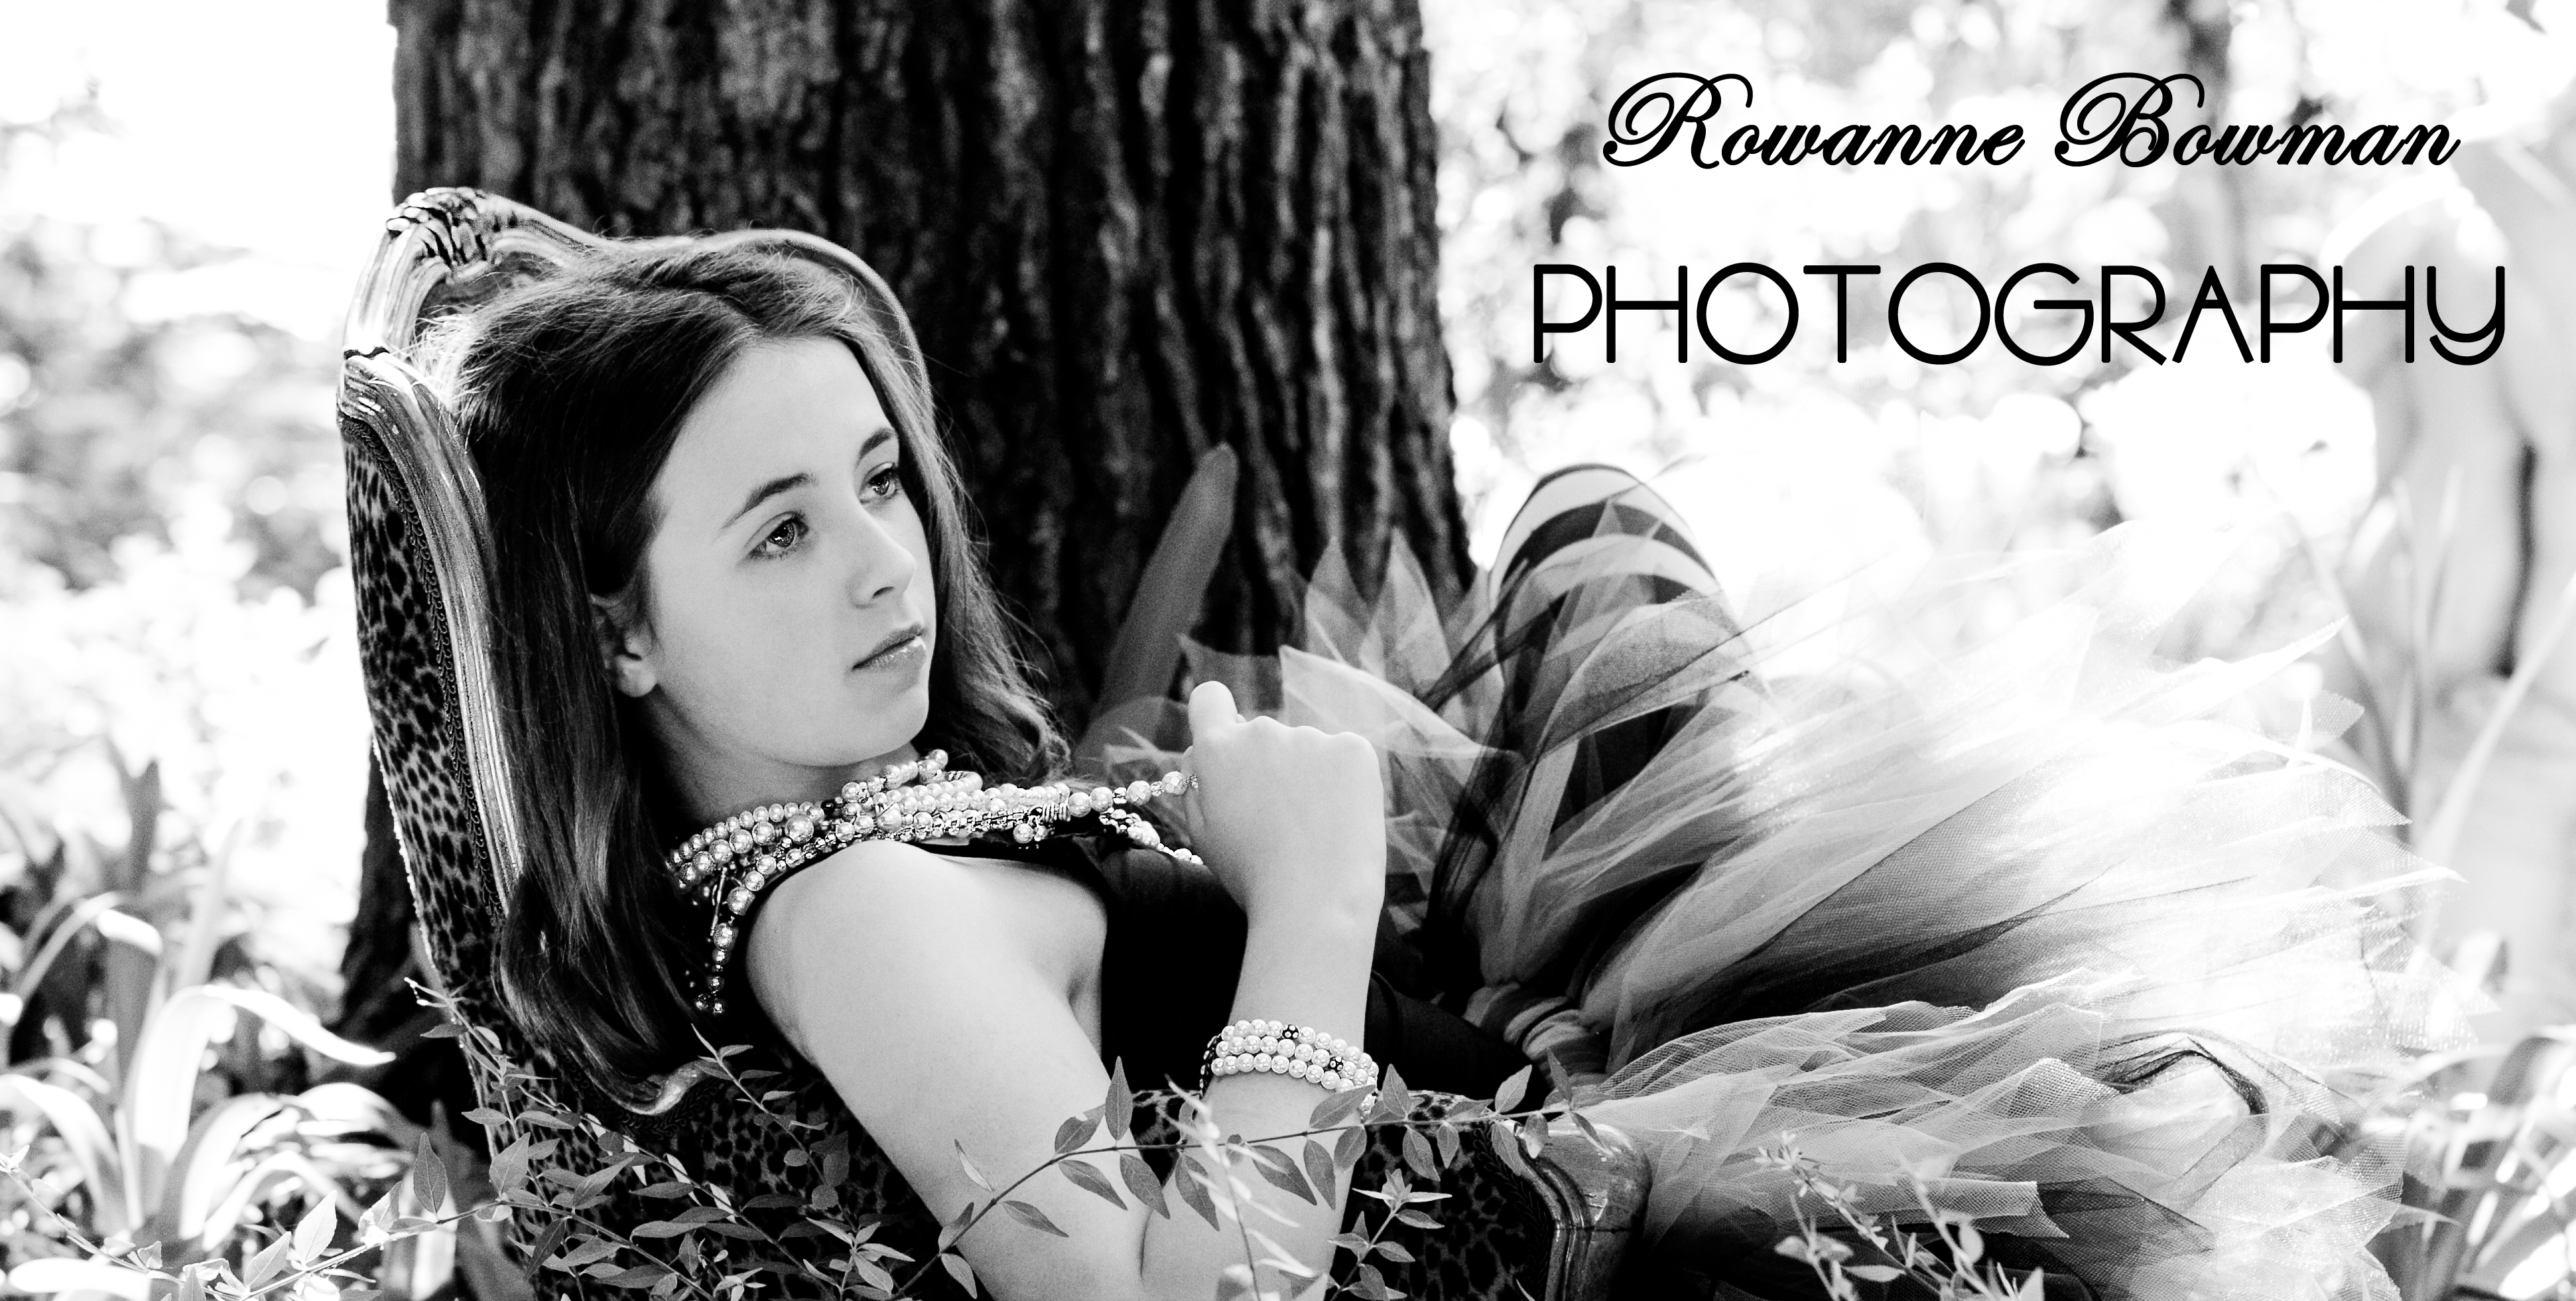 Rowanne Bowman Photography